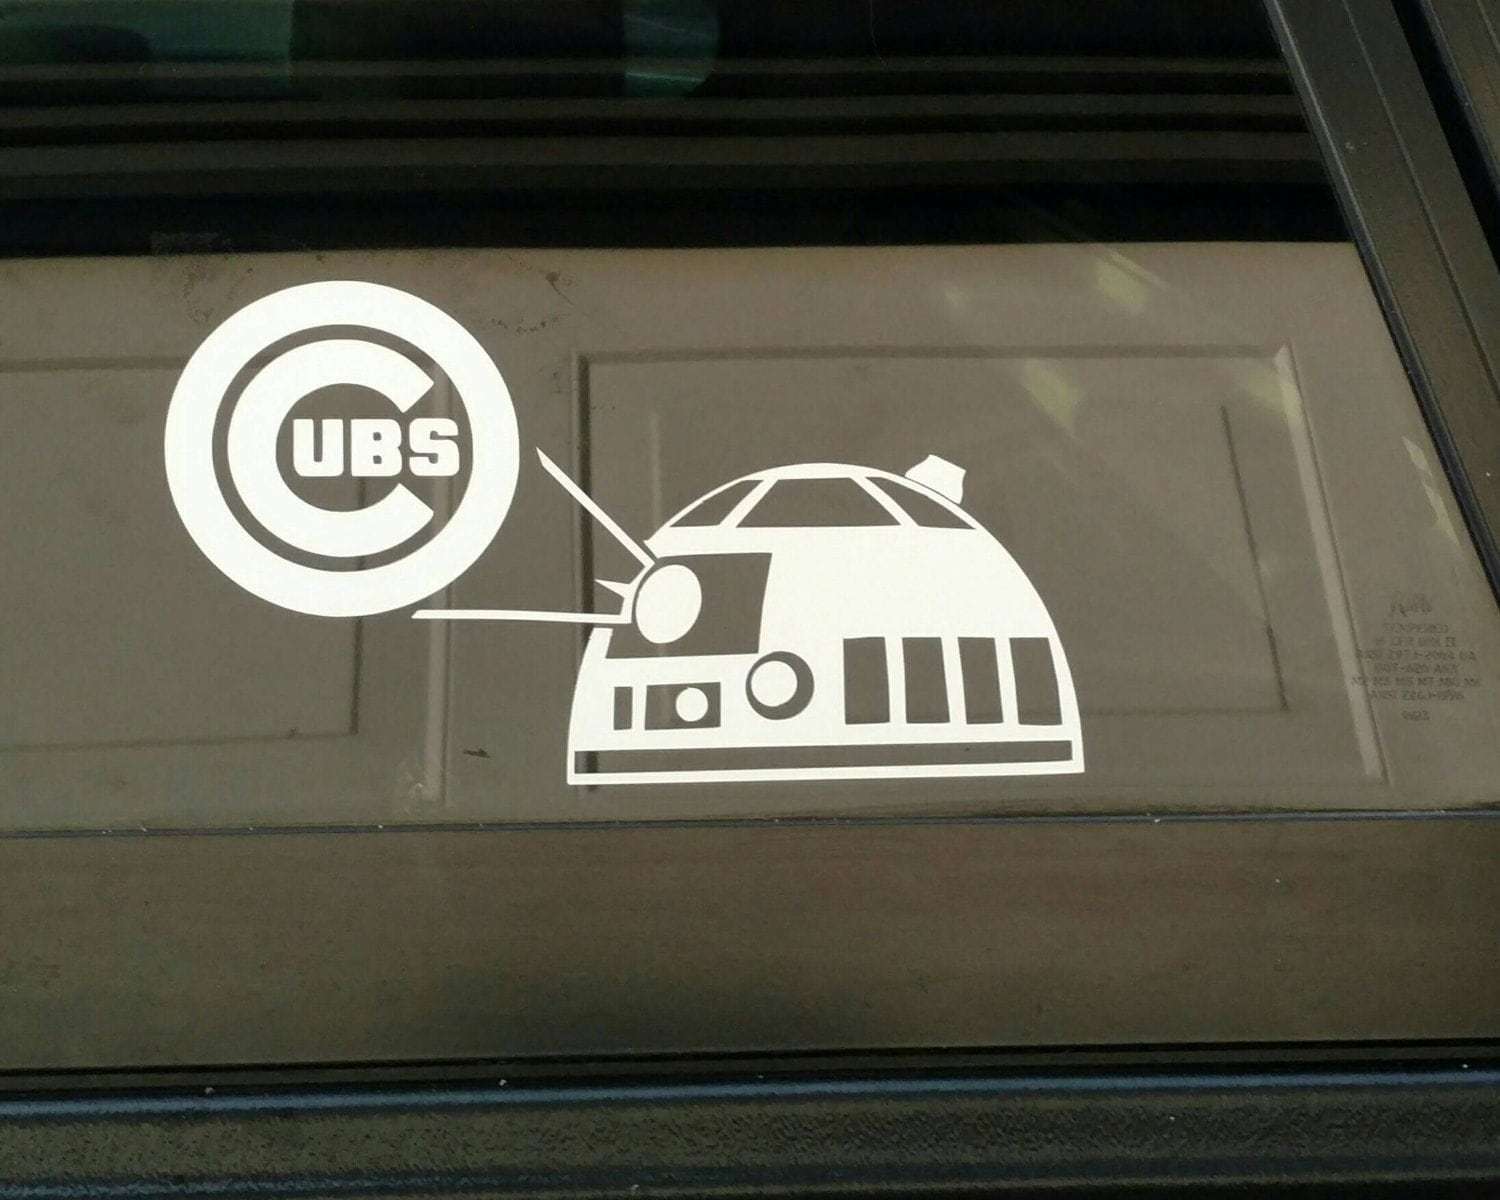 Chicago Cubs Star Wars RD Artoo Detoo Diecut Vinyl Decal - Window stickers for cars chicago